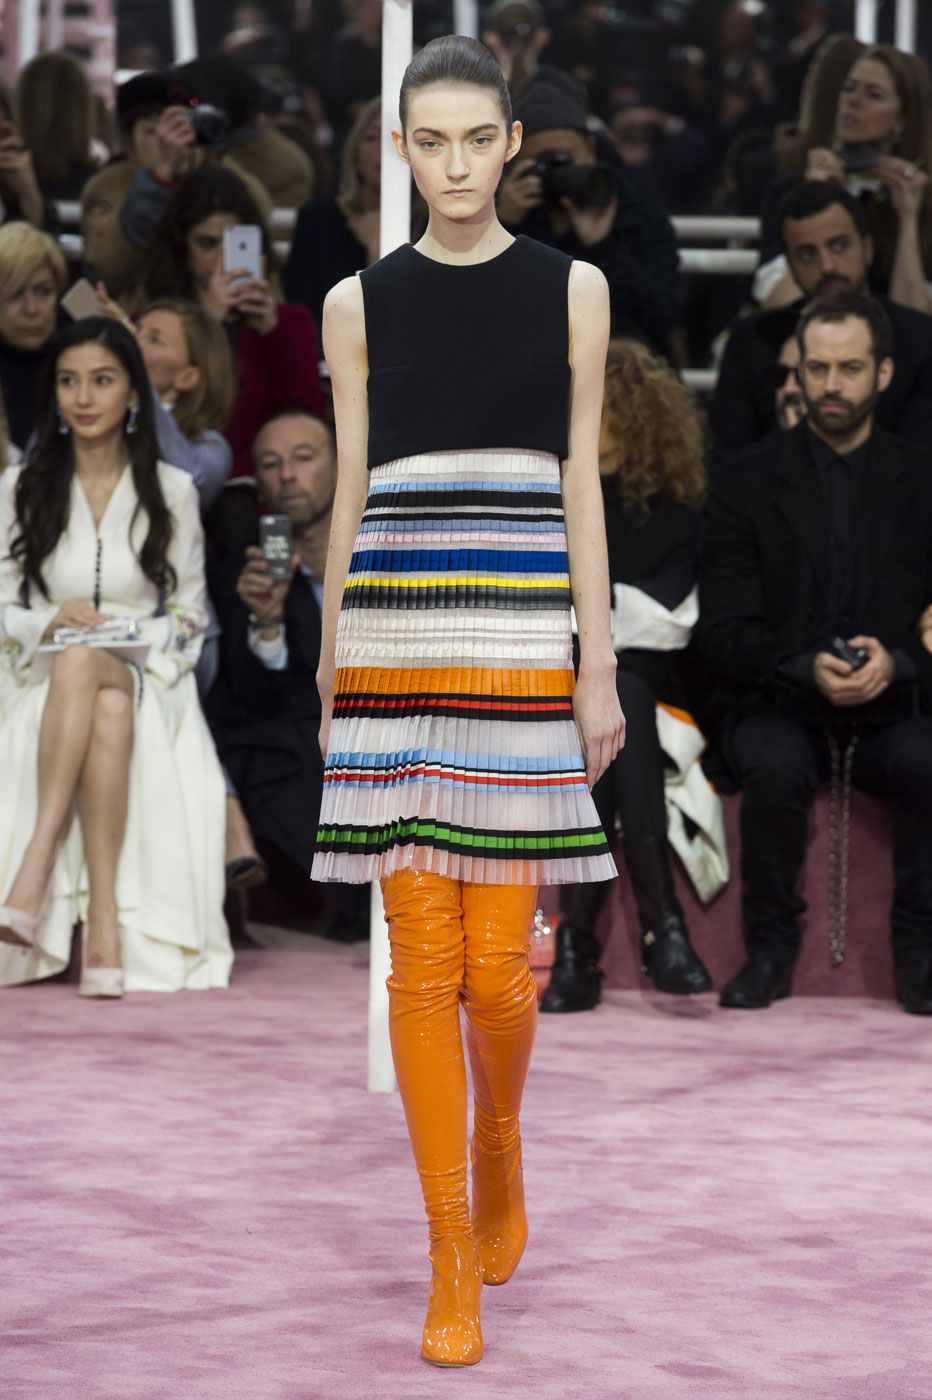 Christian-Dior-fashion-runway-show-haute-couture-paris-spring-summer-2015-the-impression-007